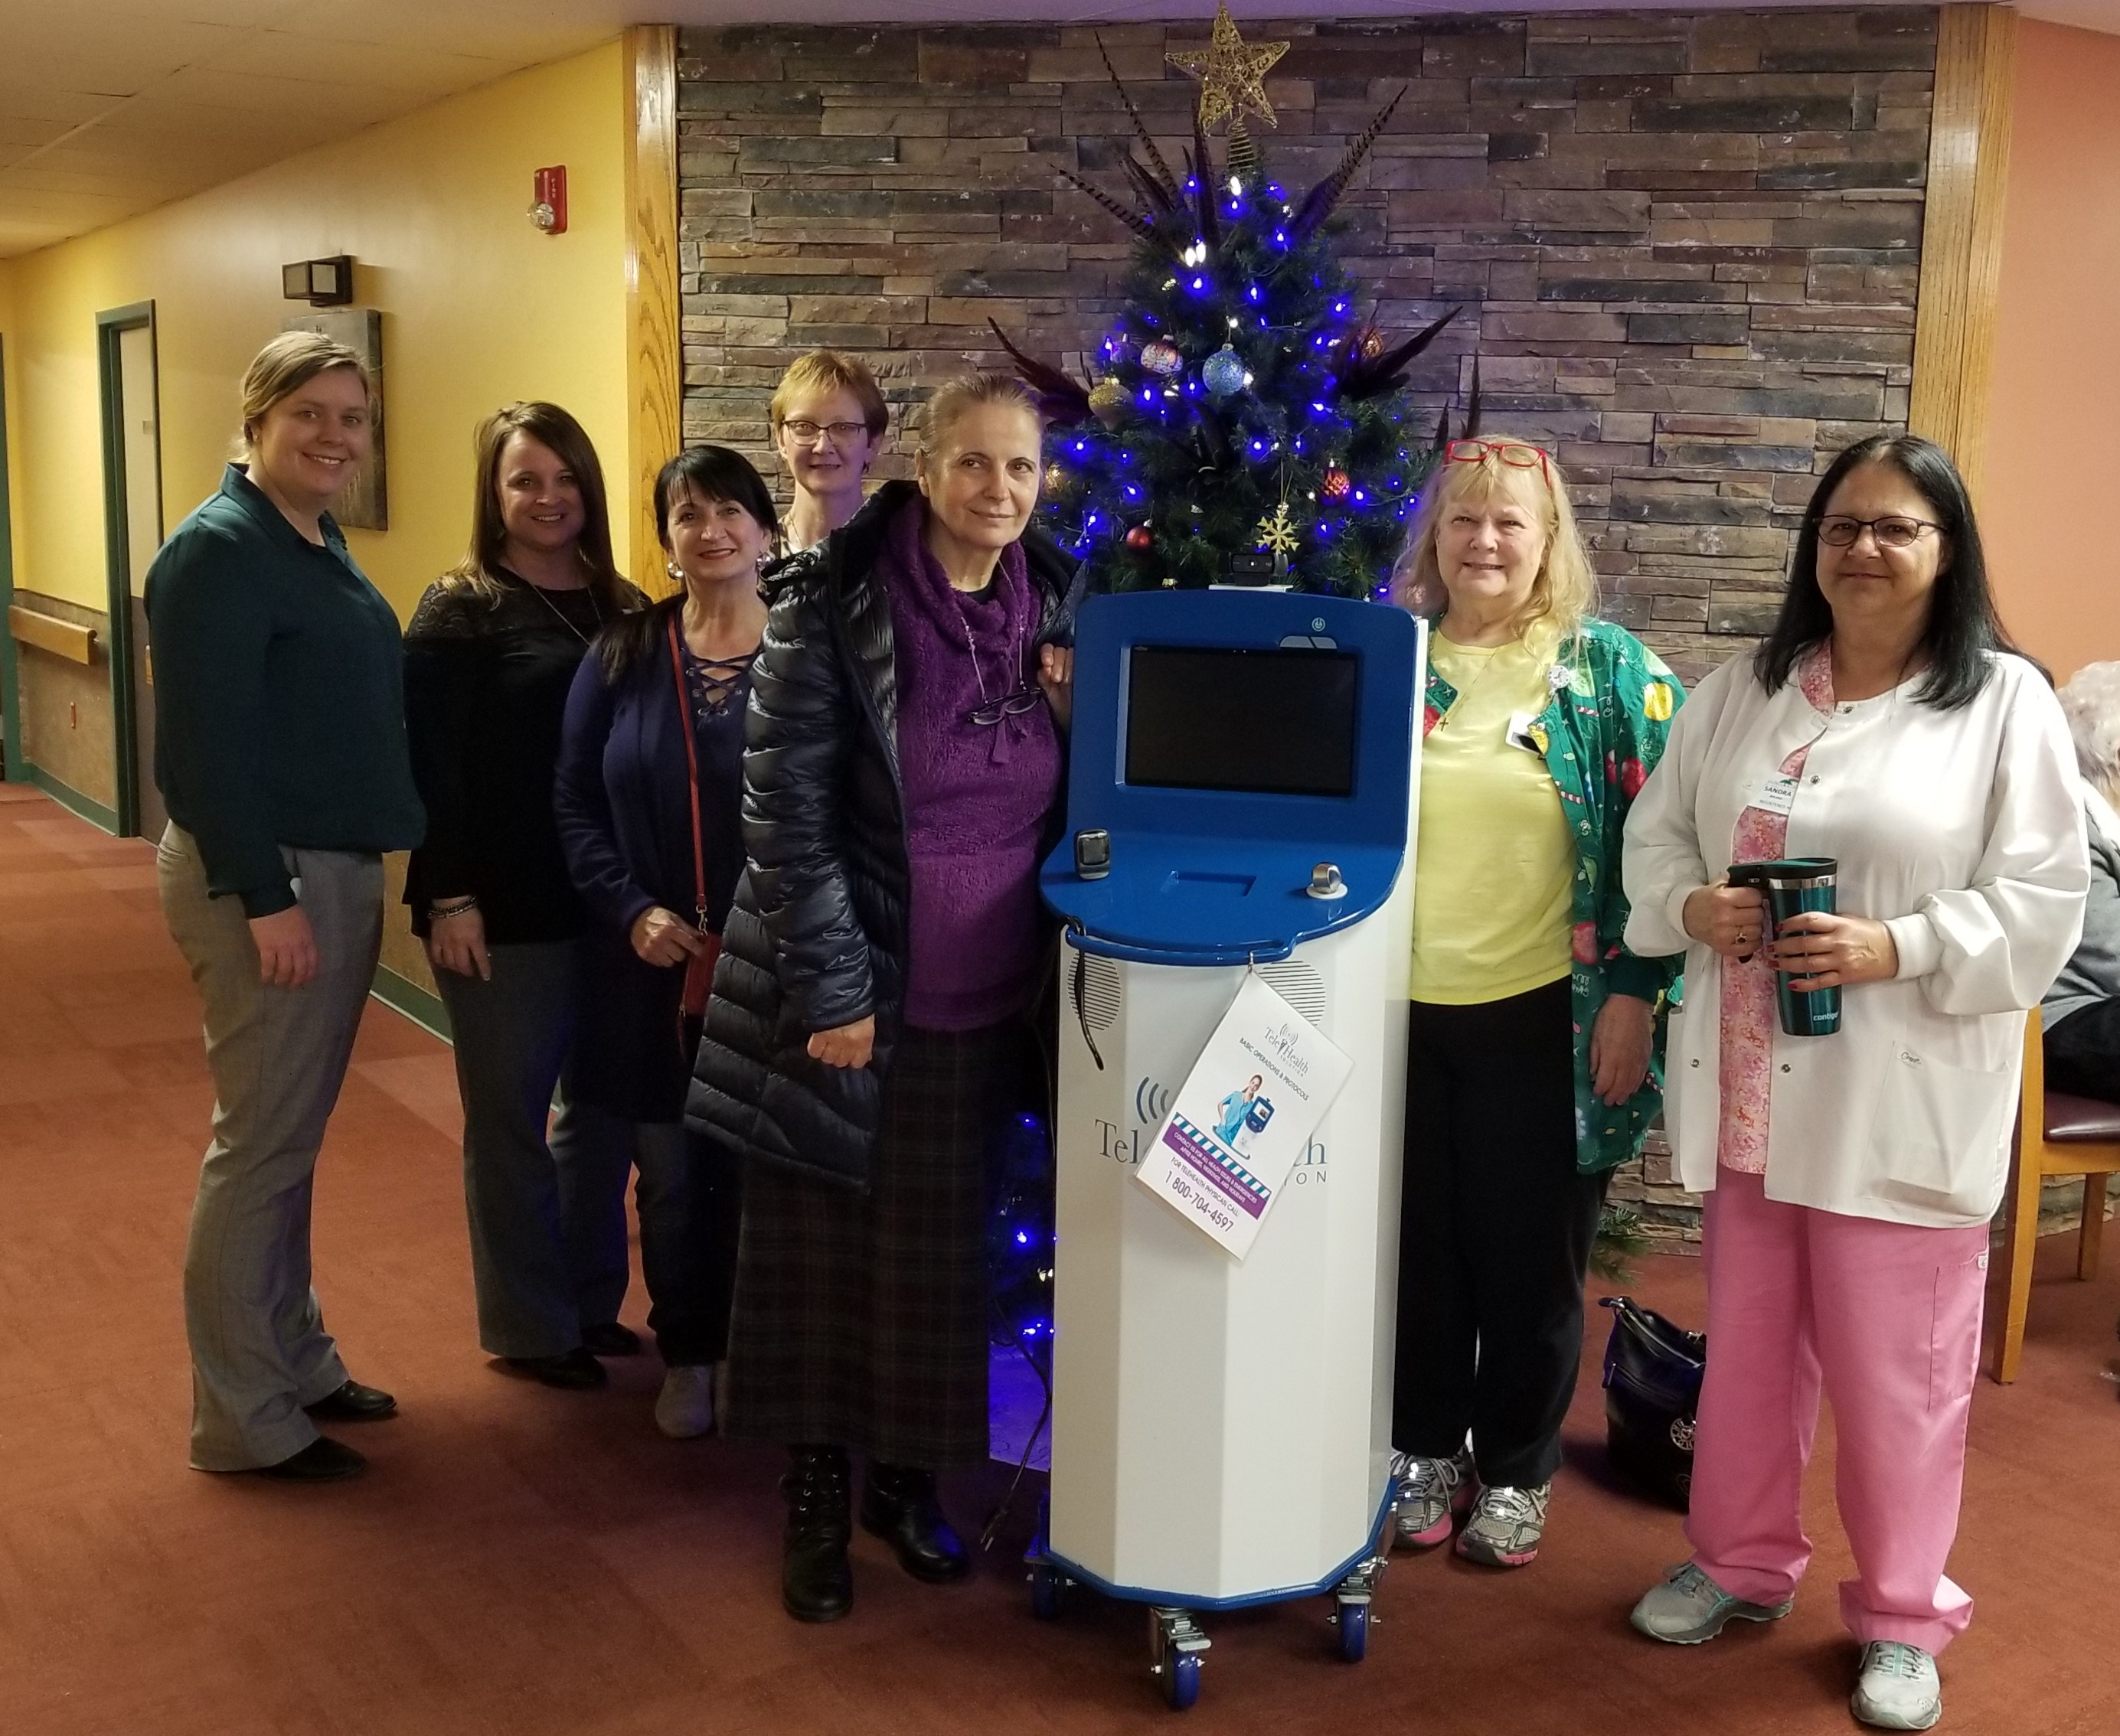 Telemedicine - The Future of Healthcare Is Now At Grandview!